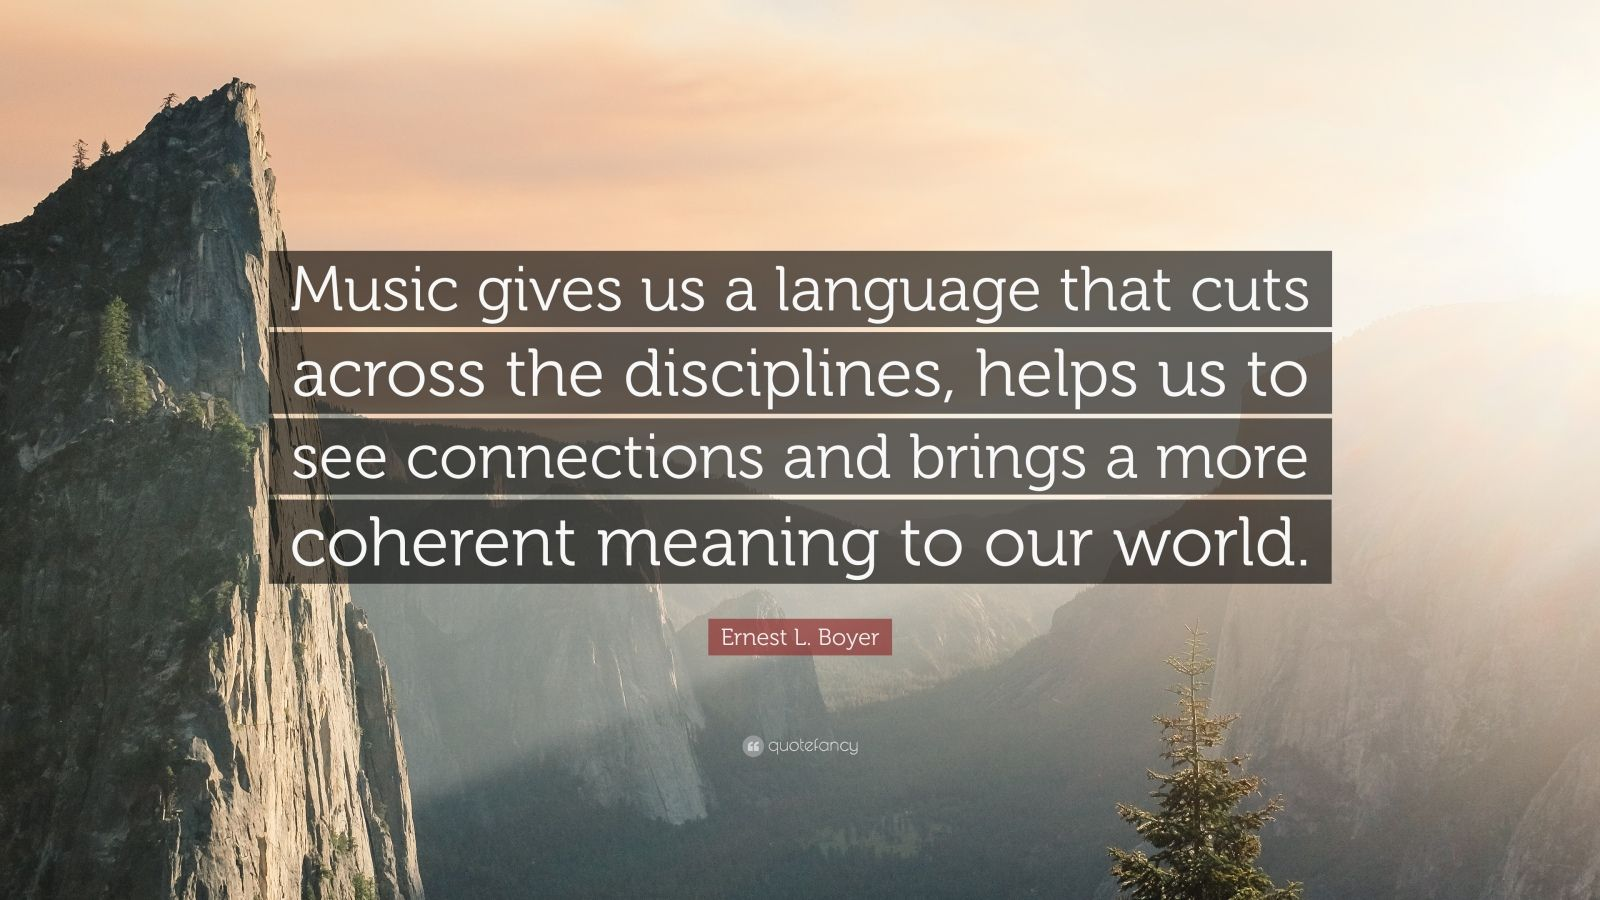 """Ernest L. Boyer Quote: """"Music gives us a language that cuts across the disciplines, helps us to see connections and brings a more coherent meaning to our world."""""""